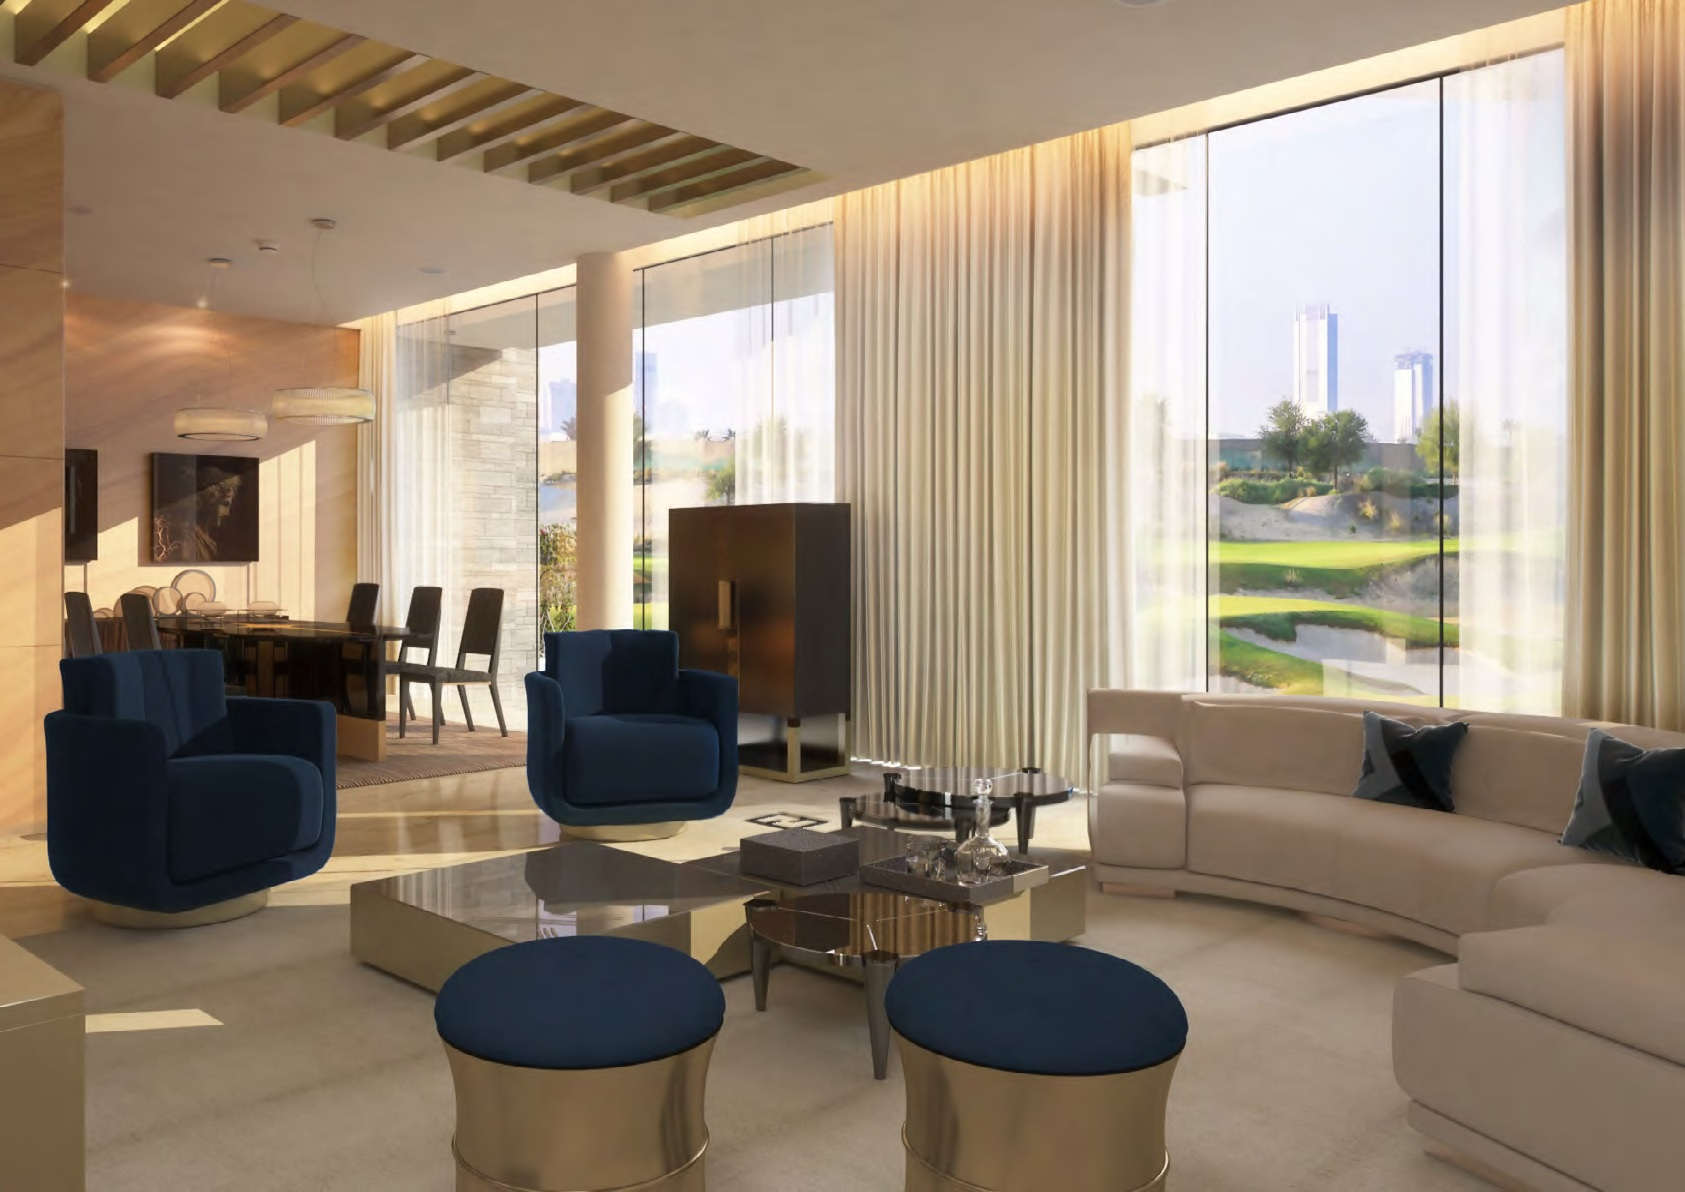 fendi styled villas project apartment interiors3